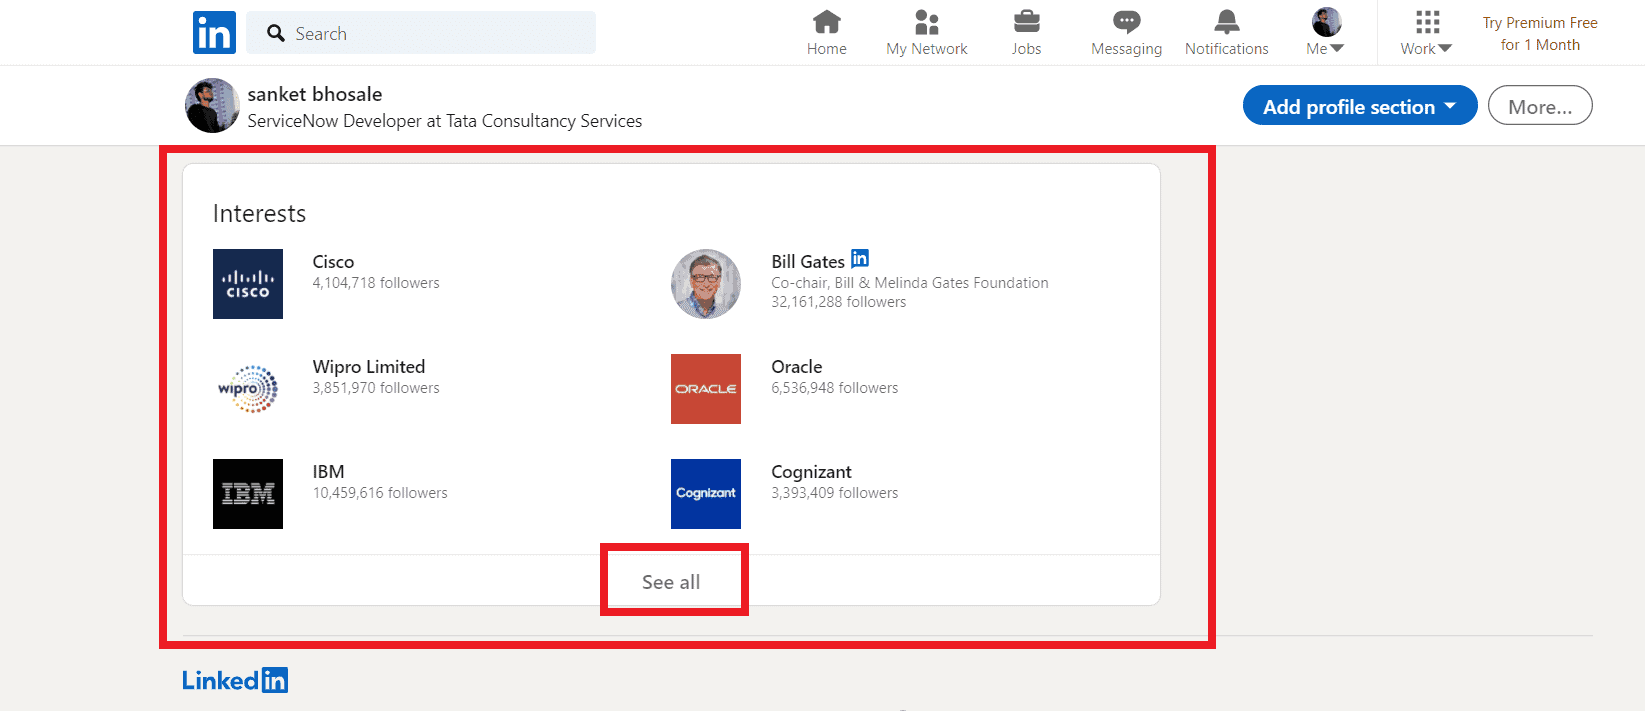 How to Add, Edit or Remove interests on LinkedIn